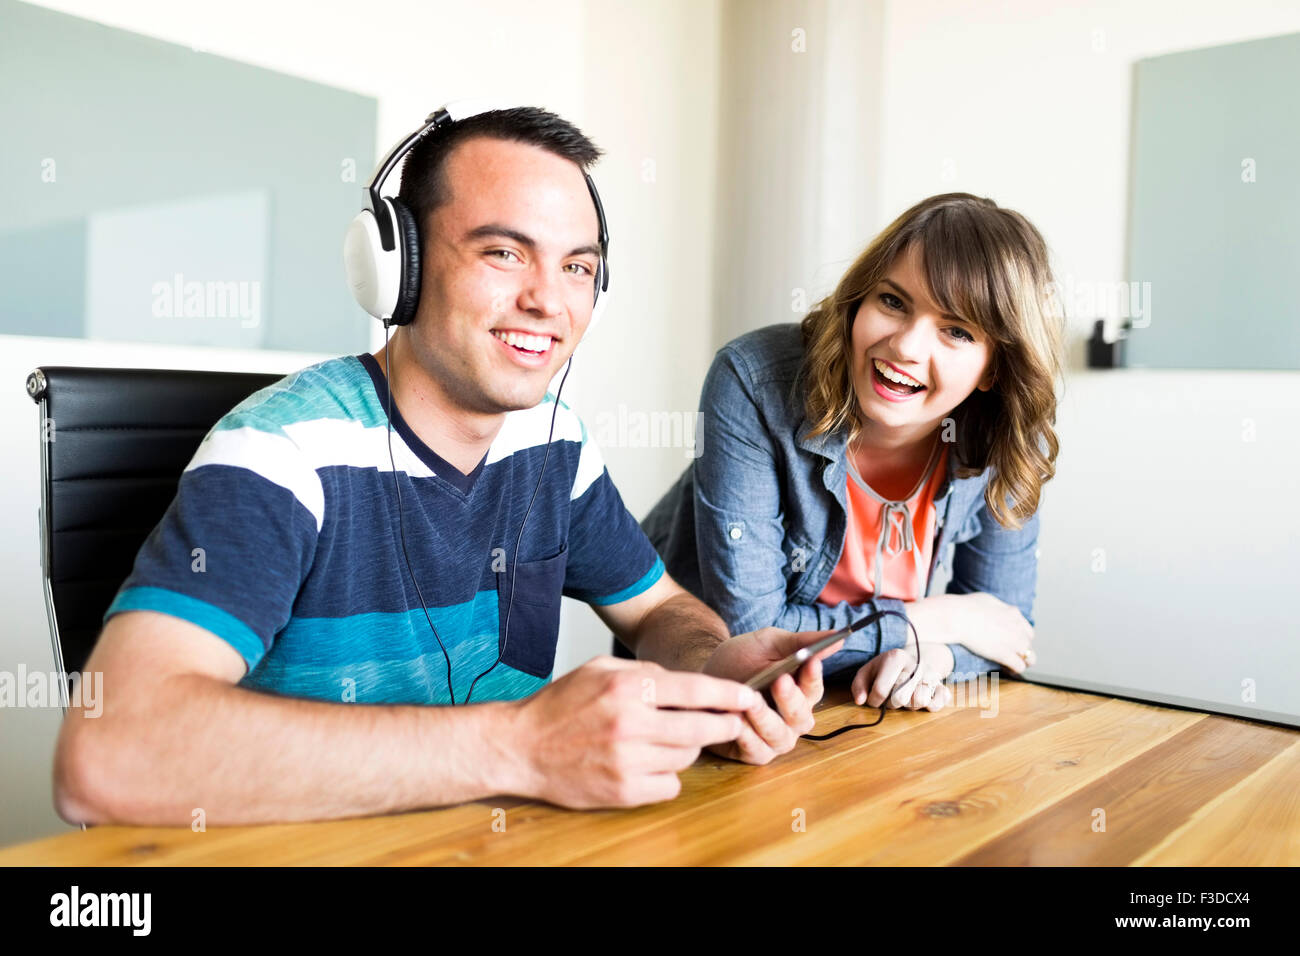 Office workers smiling - Stock Image